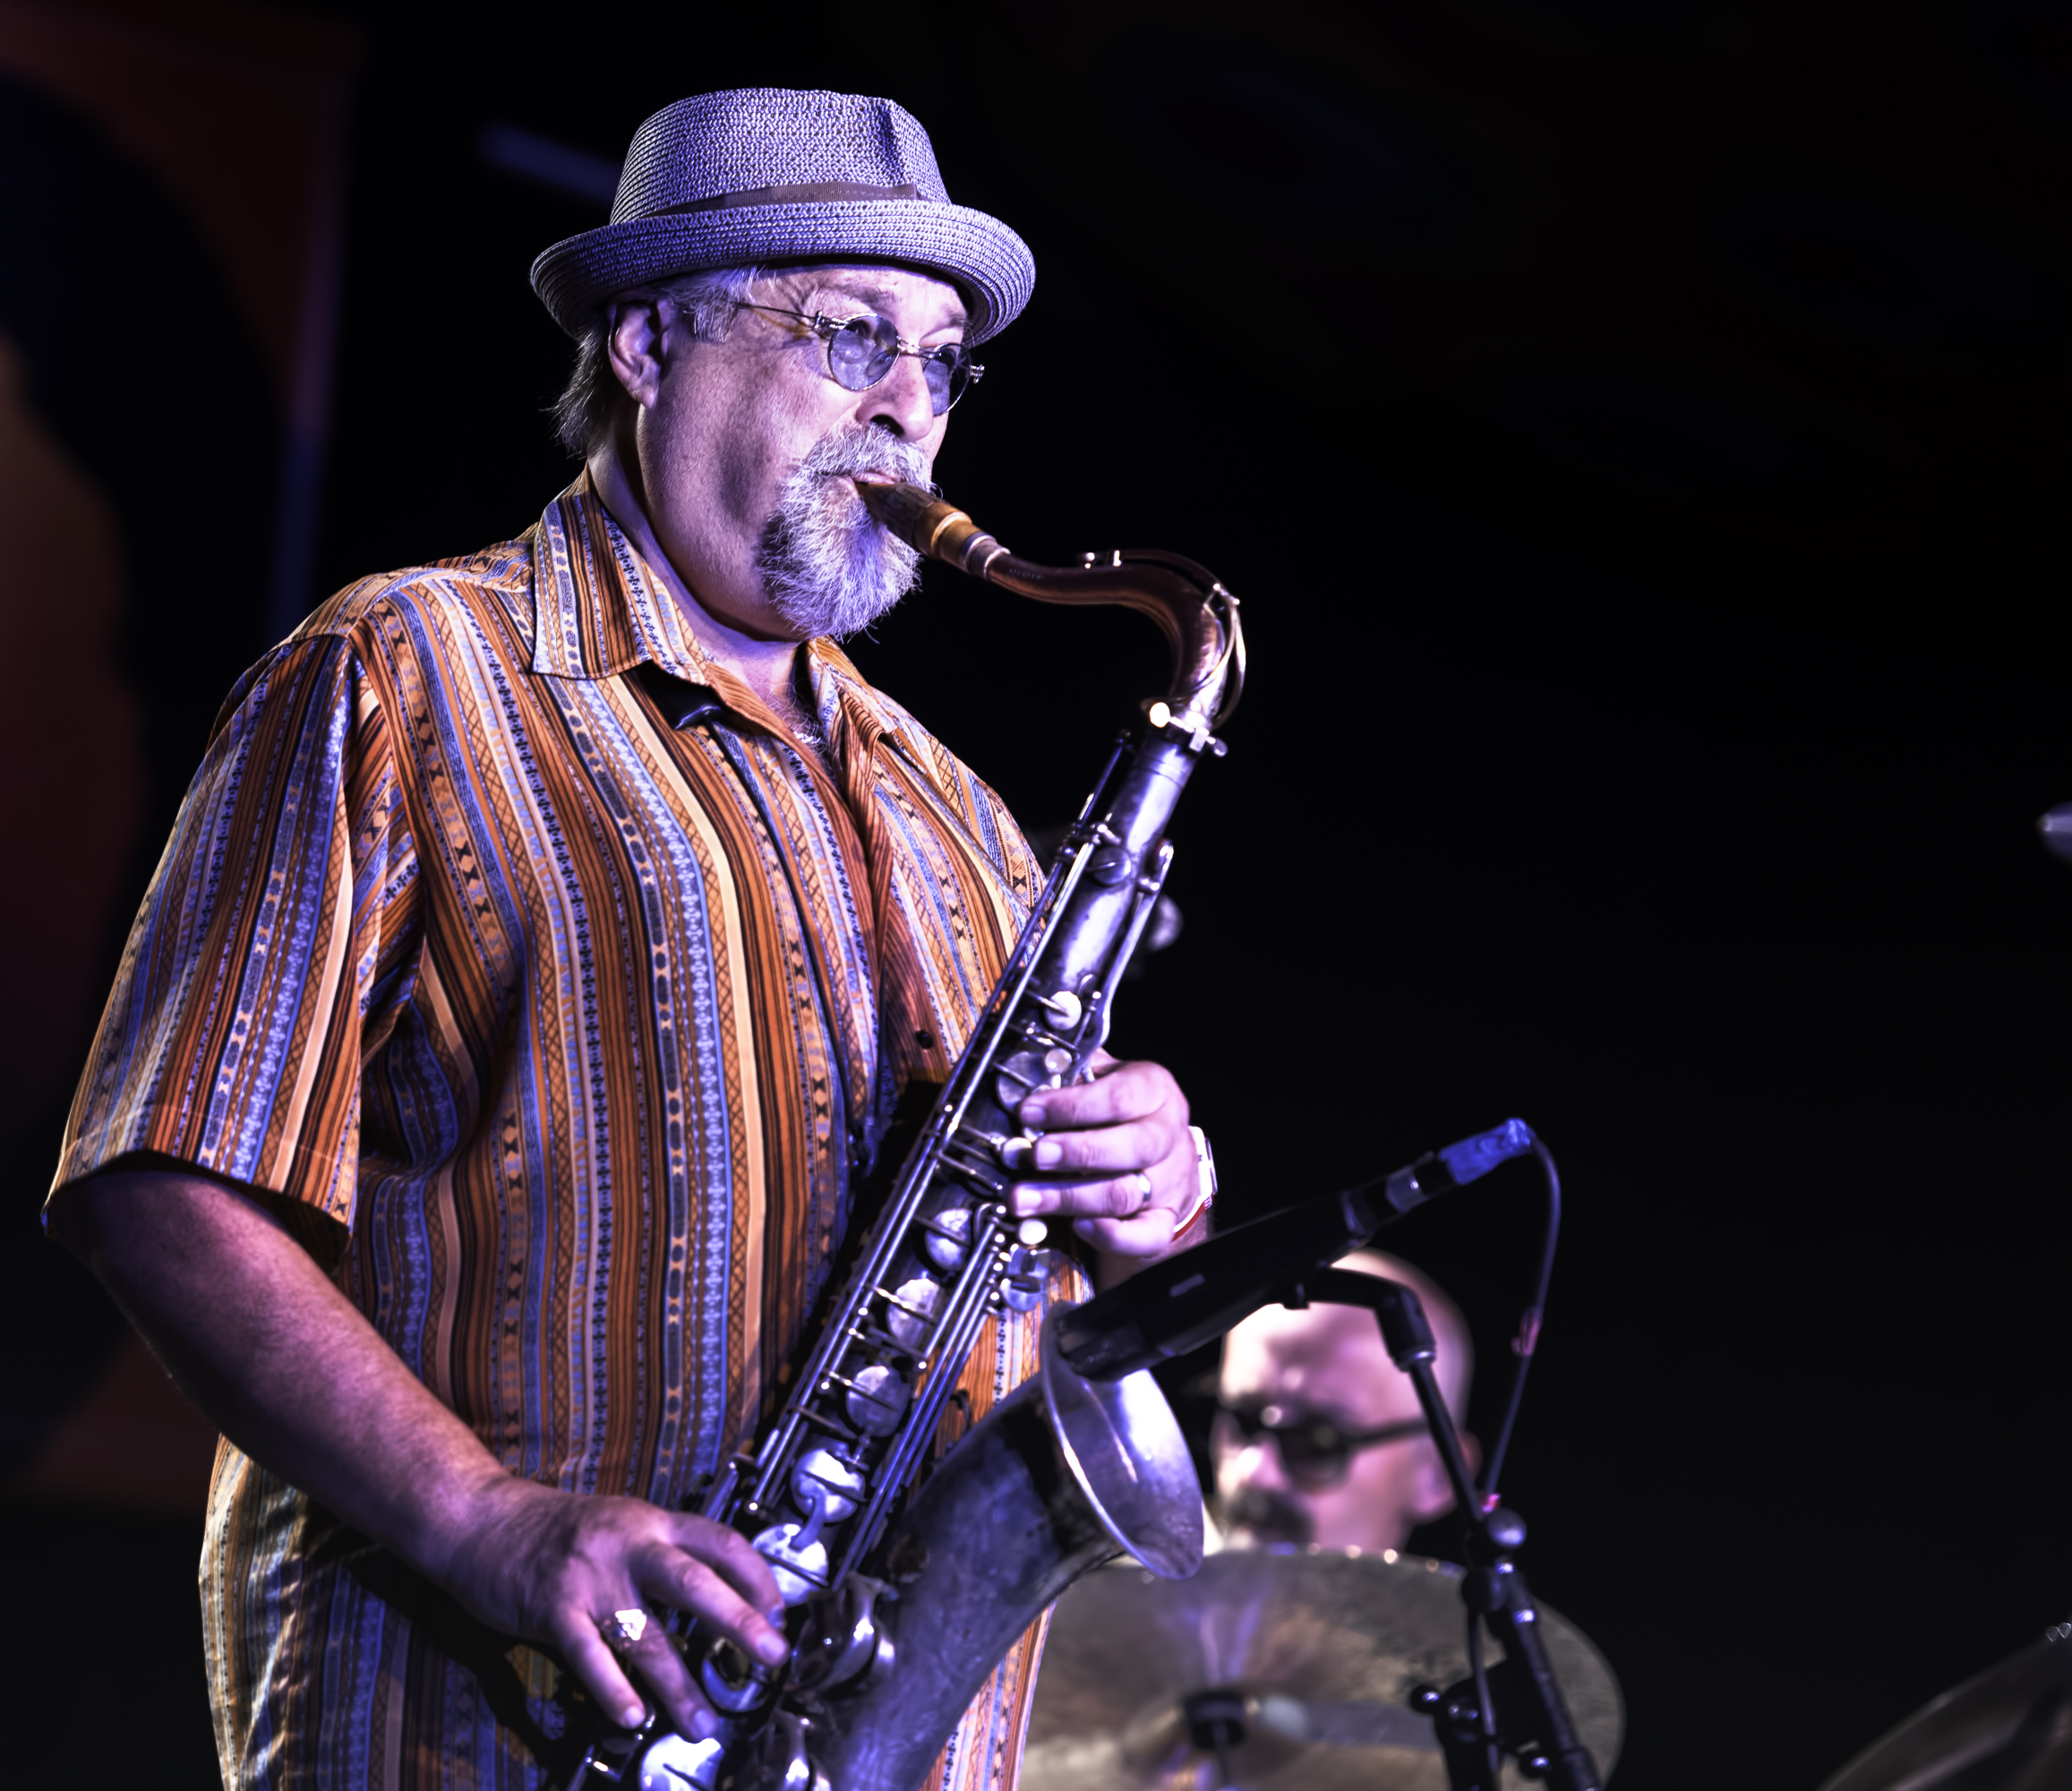 Joe Lovano with the Classic Quartet at the Monterey Jazz Festival